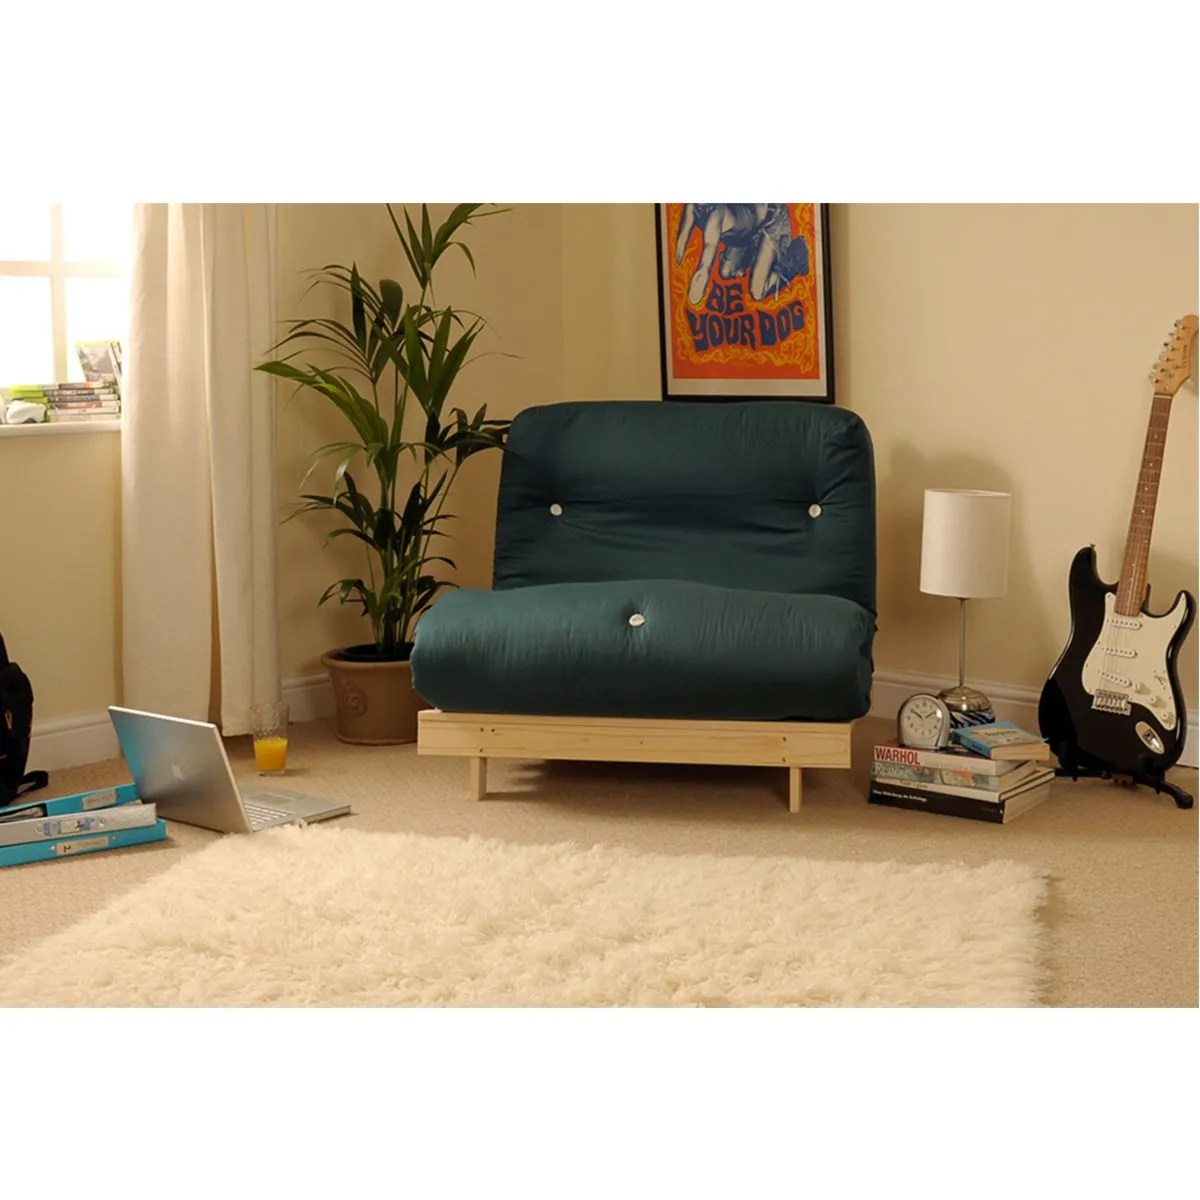 Albury Sofa Bed Set With Tufted Mattress Dark Green Robert Dyas